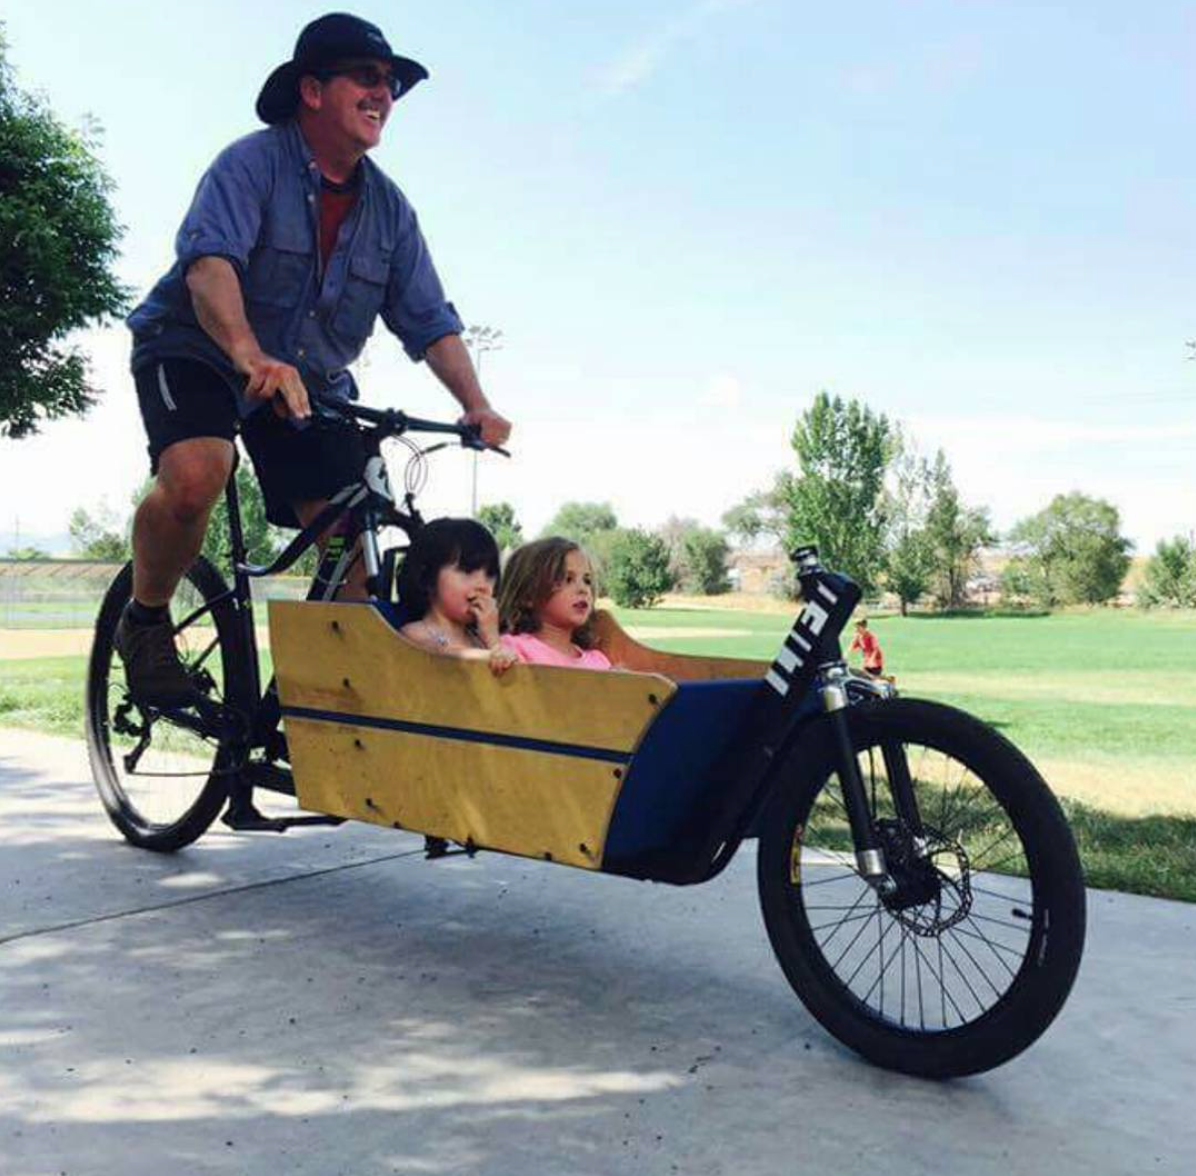 Ein Argo Cargo Bike in Aktion. Quelle: https://argobikes.com/